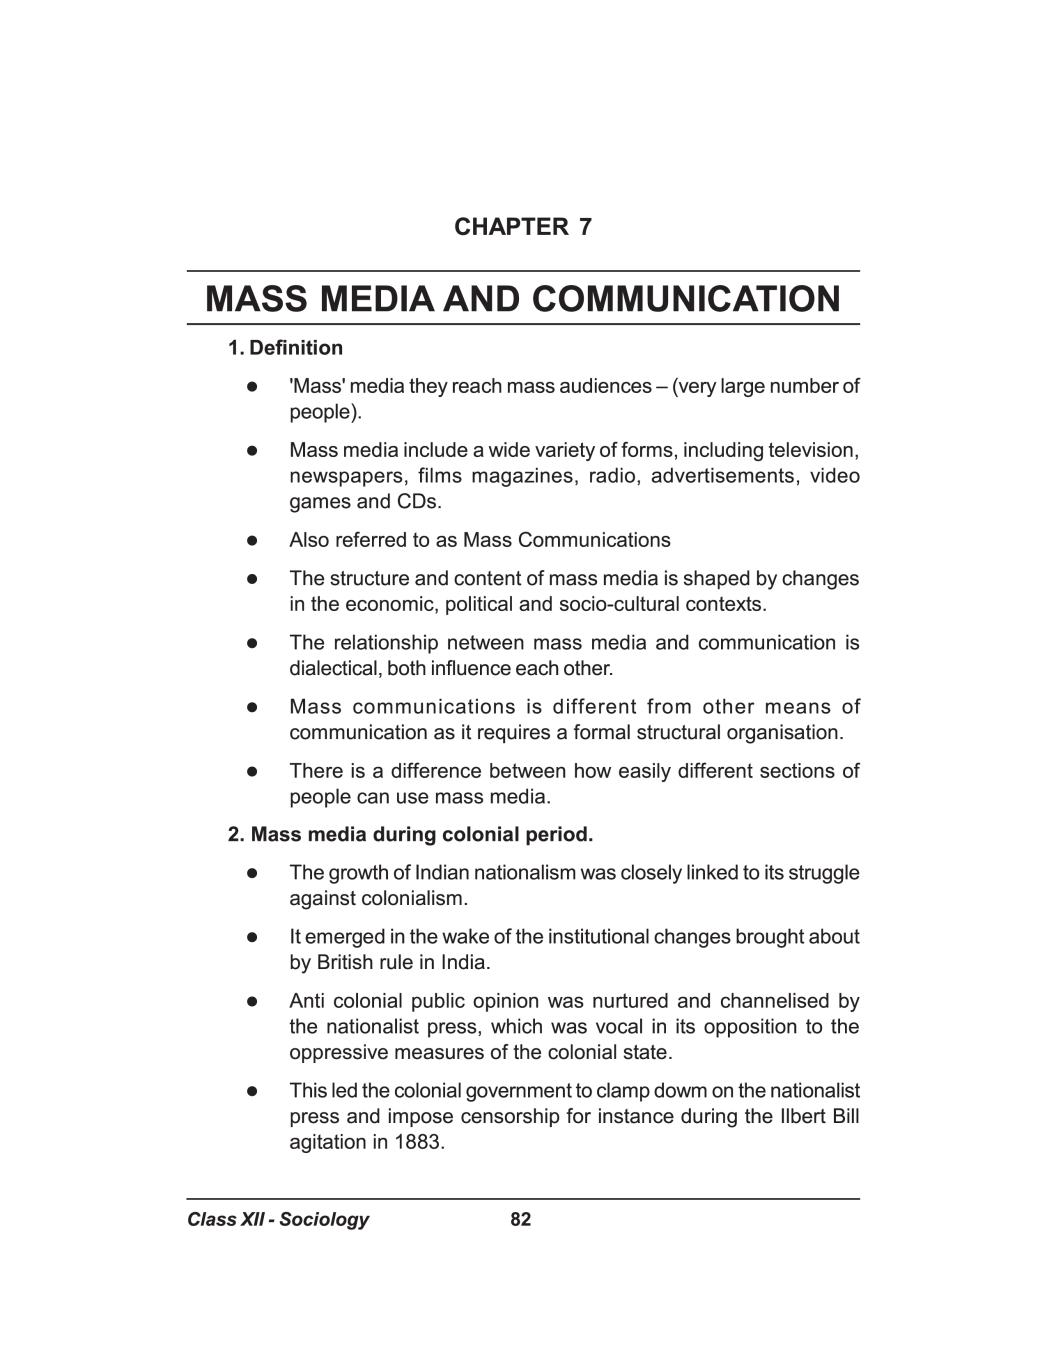 Class 12 Sociology Notes for Mass Media and Communication – AglaSem